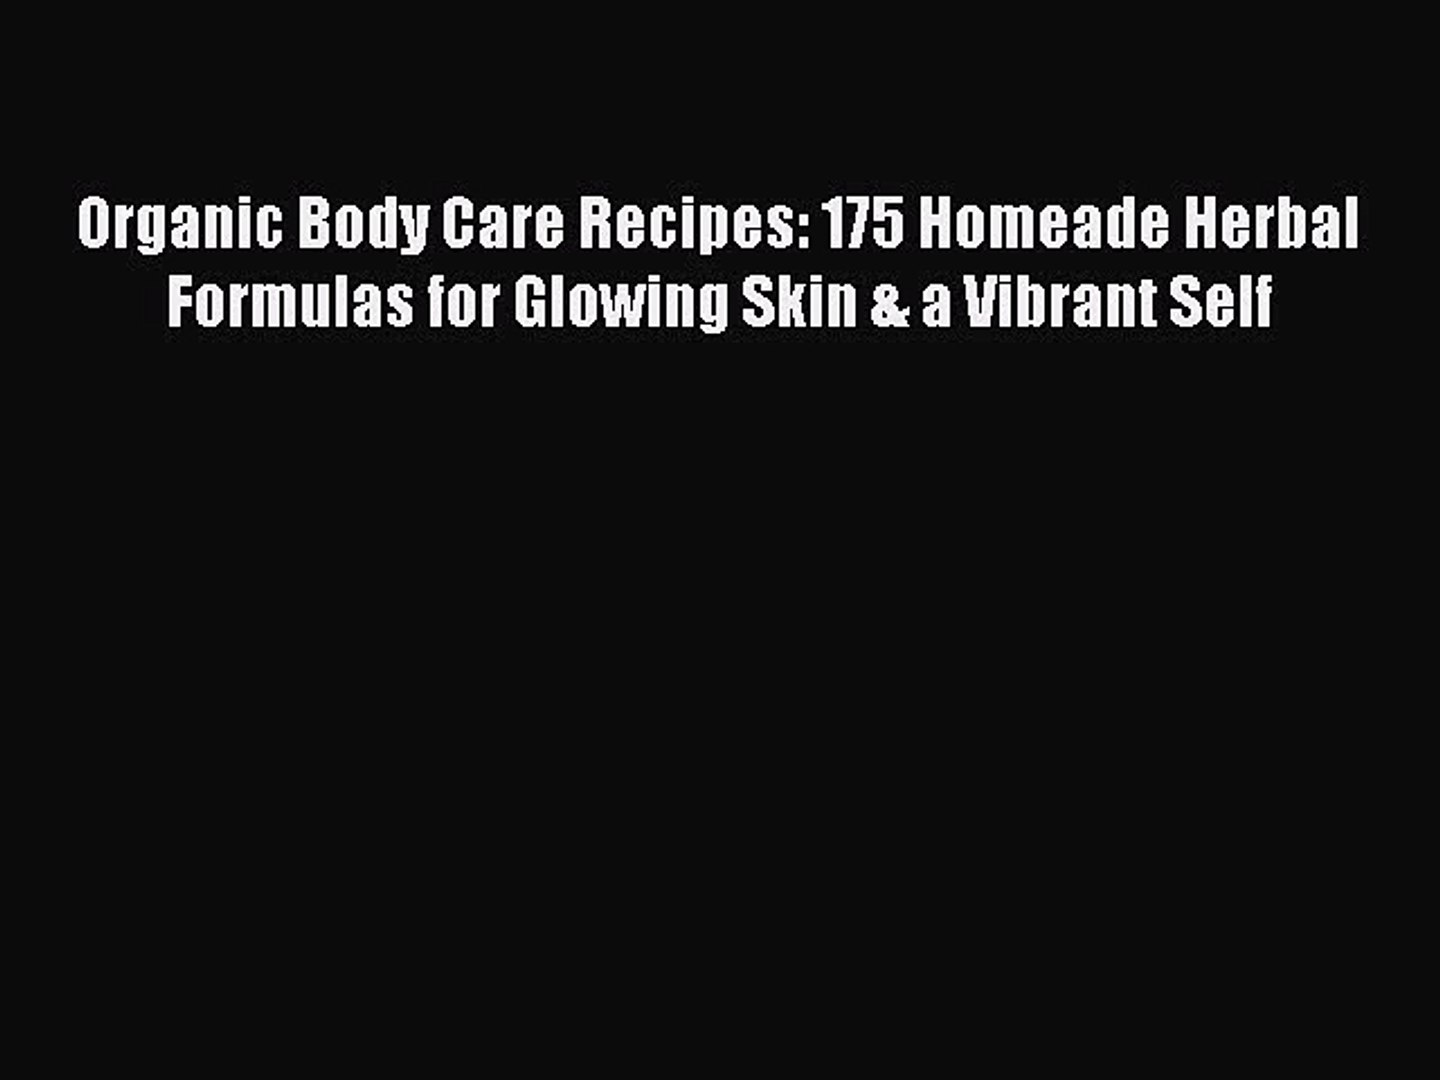 Read Organic Body Care Recipes: 175 Homeade Herbal Formulas for Glowing Skin & a Vibrant Self